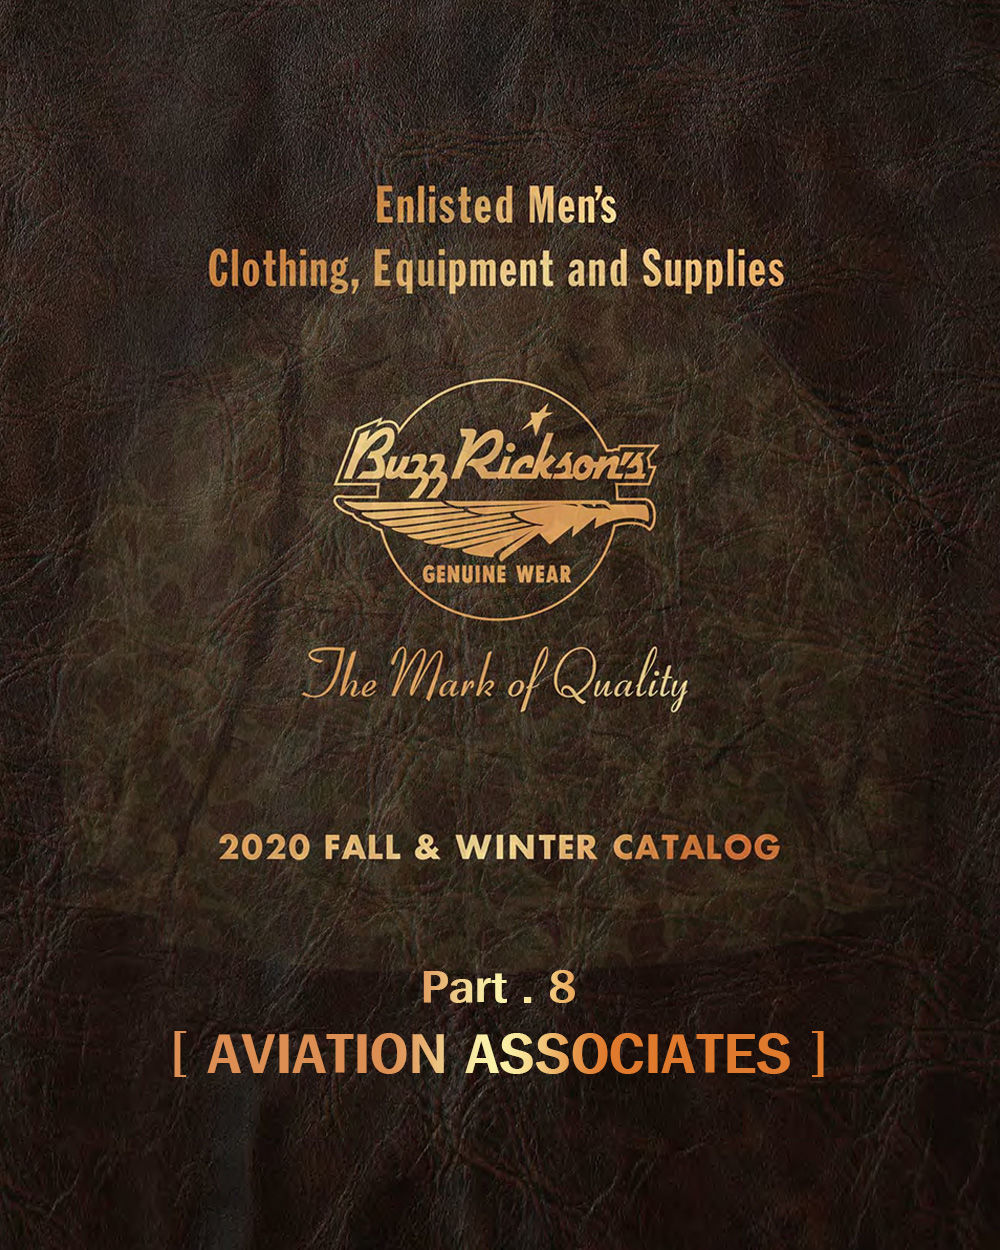 20FW BUZZRICKSONS AVIATION ASSOCIATES (PART.8)